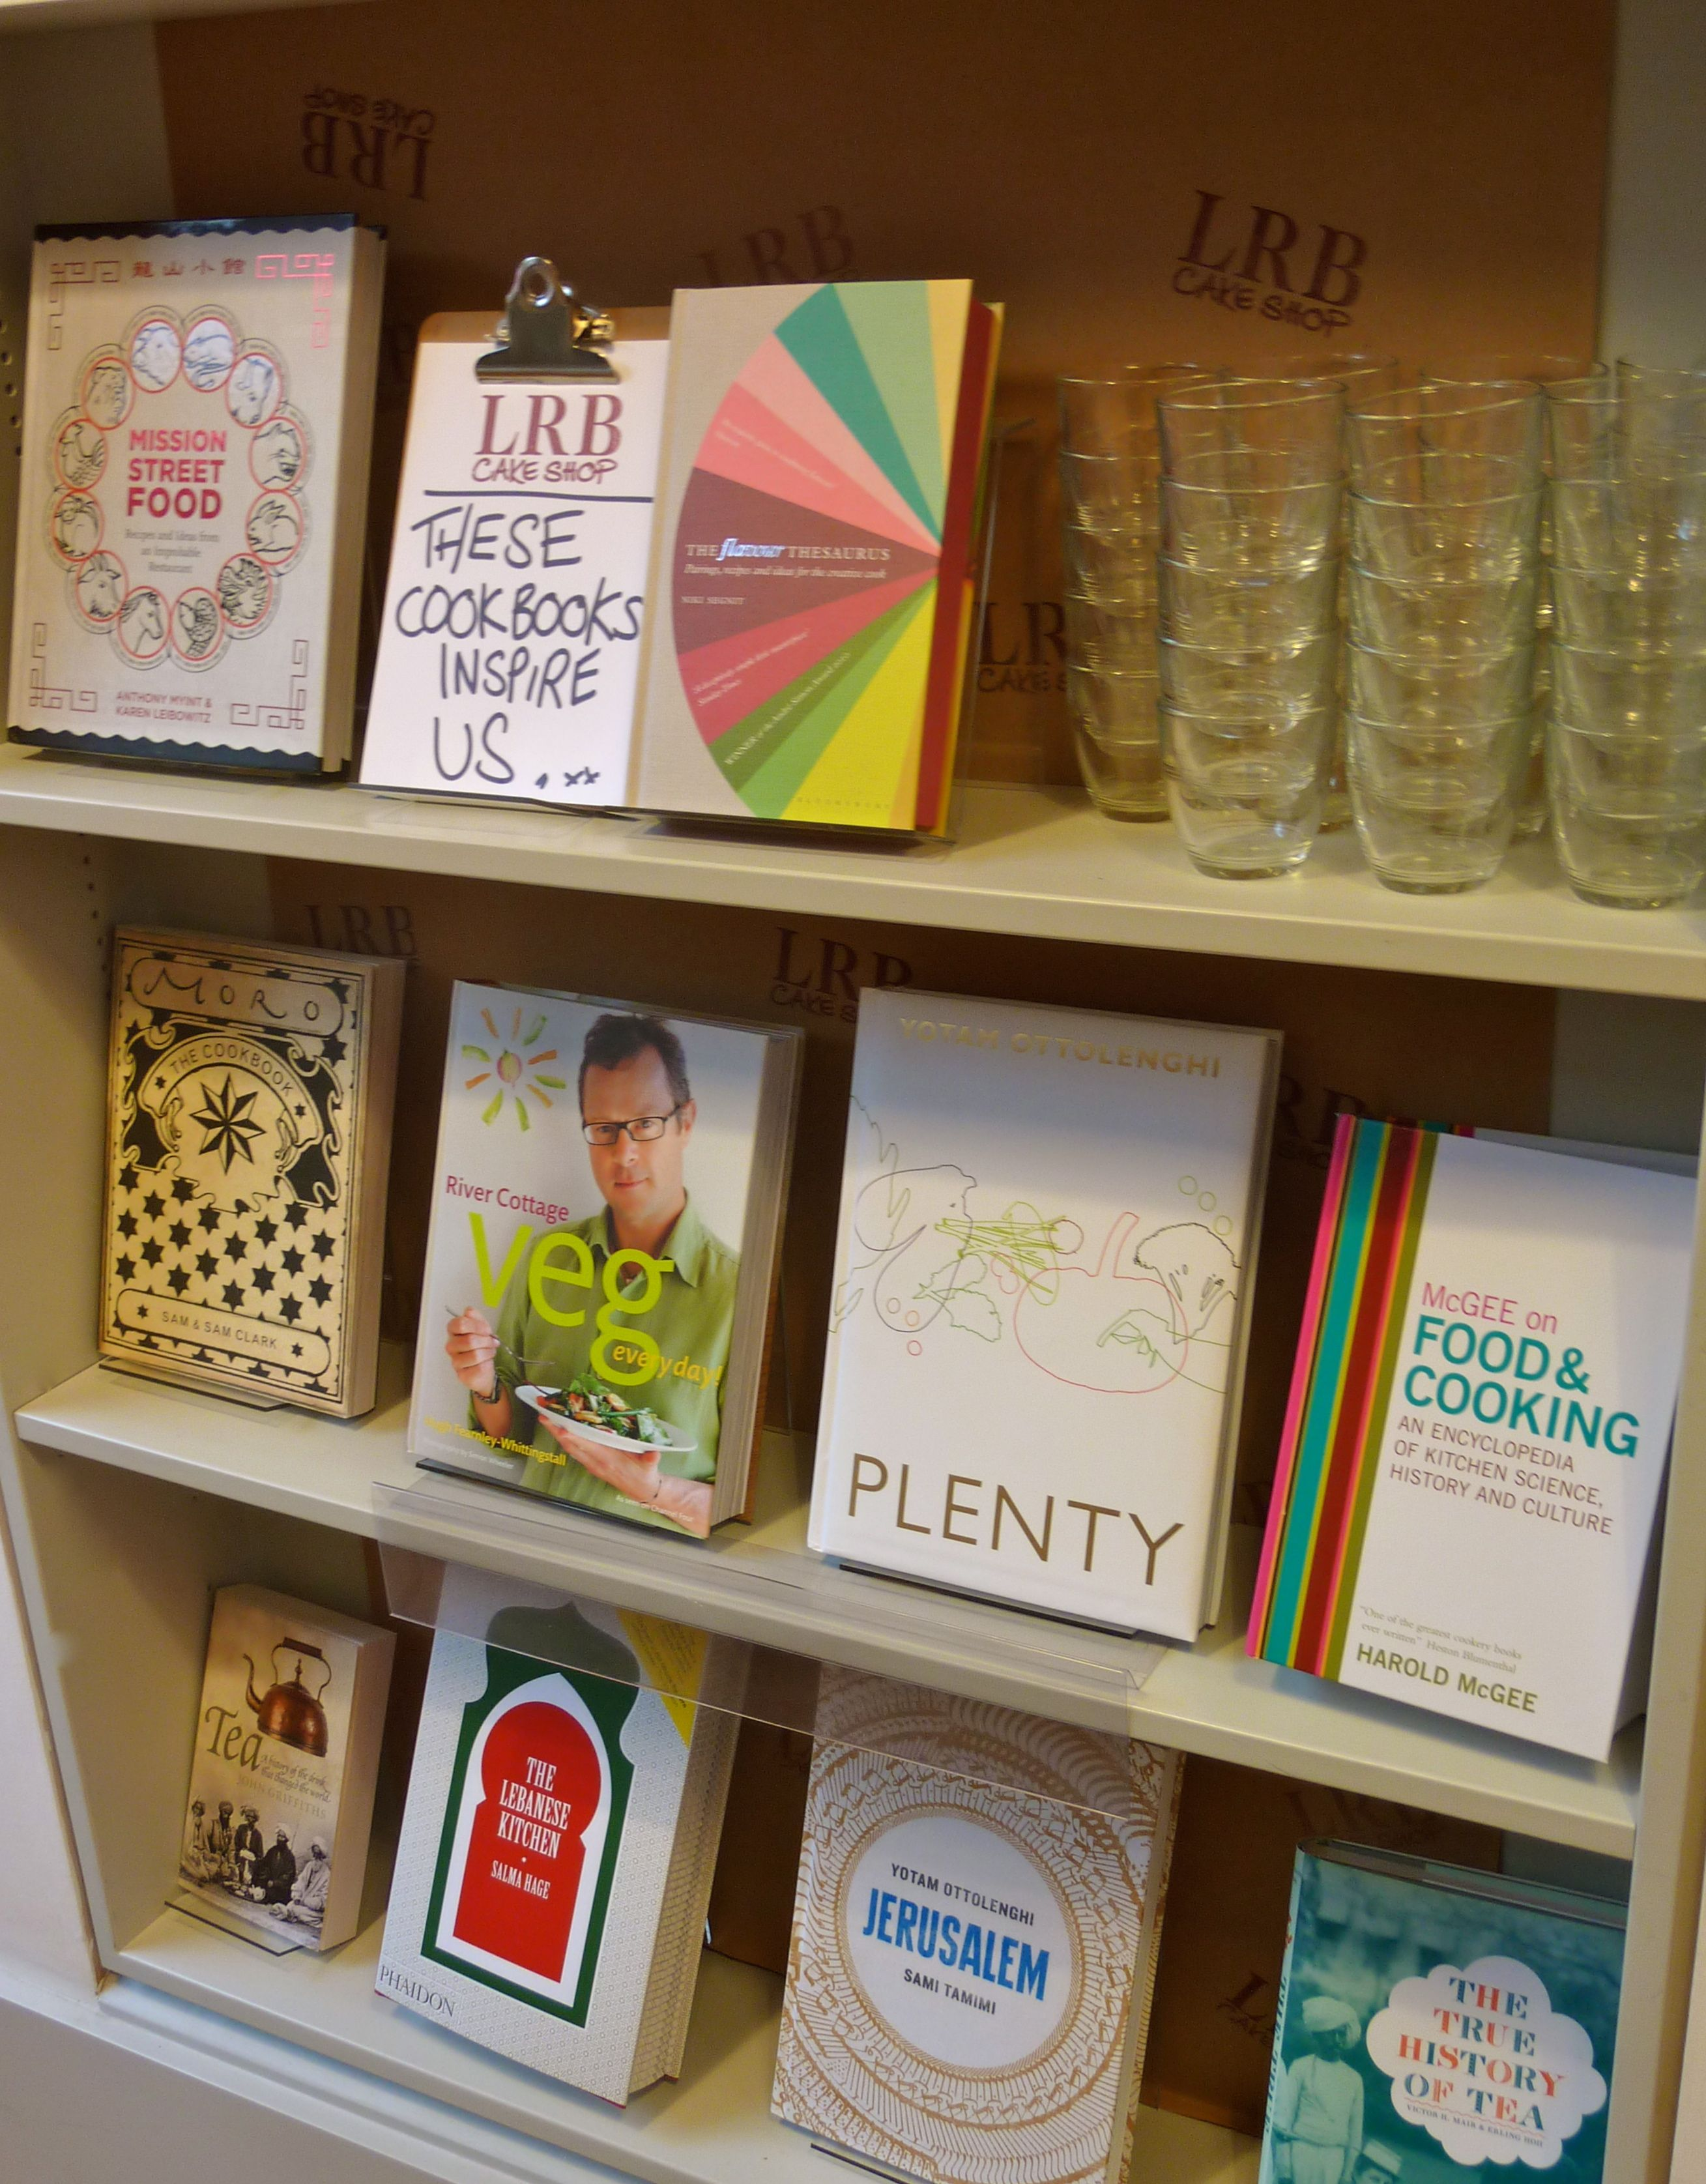 london review of books cake shop